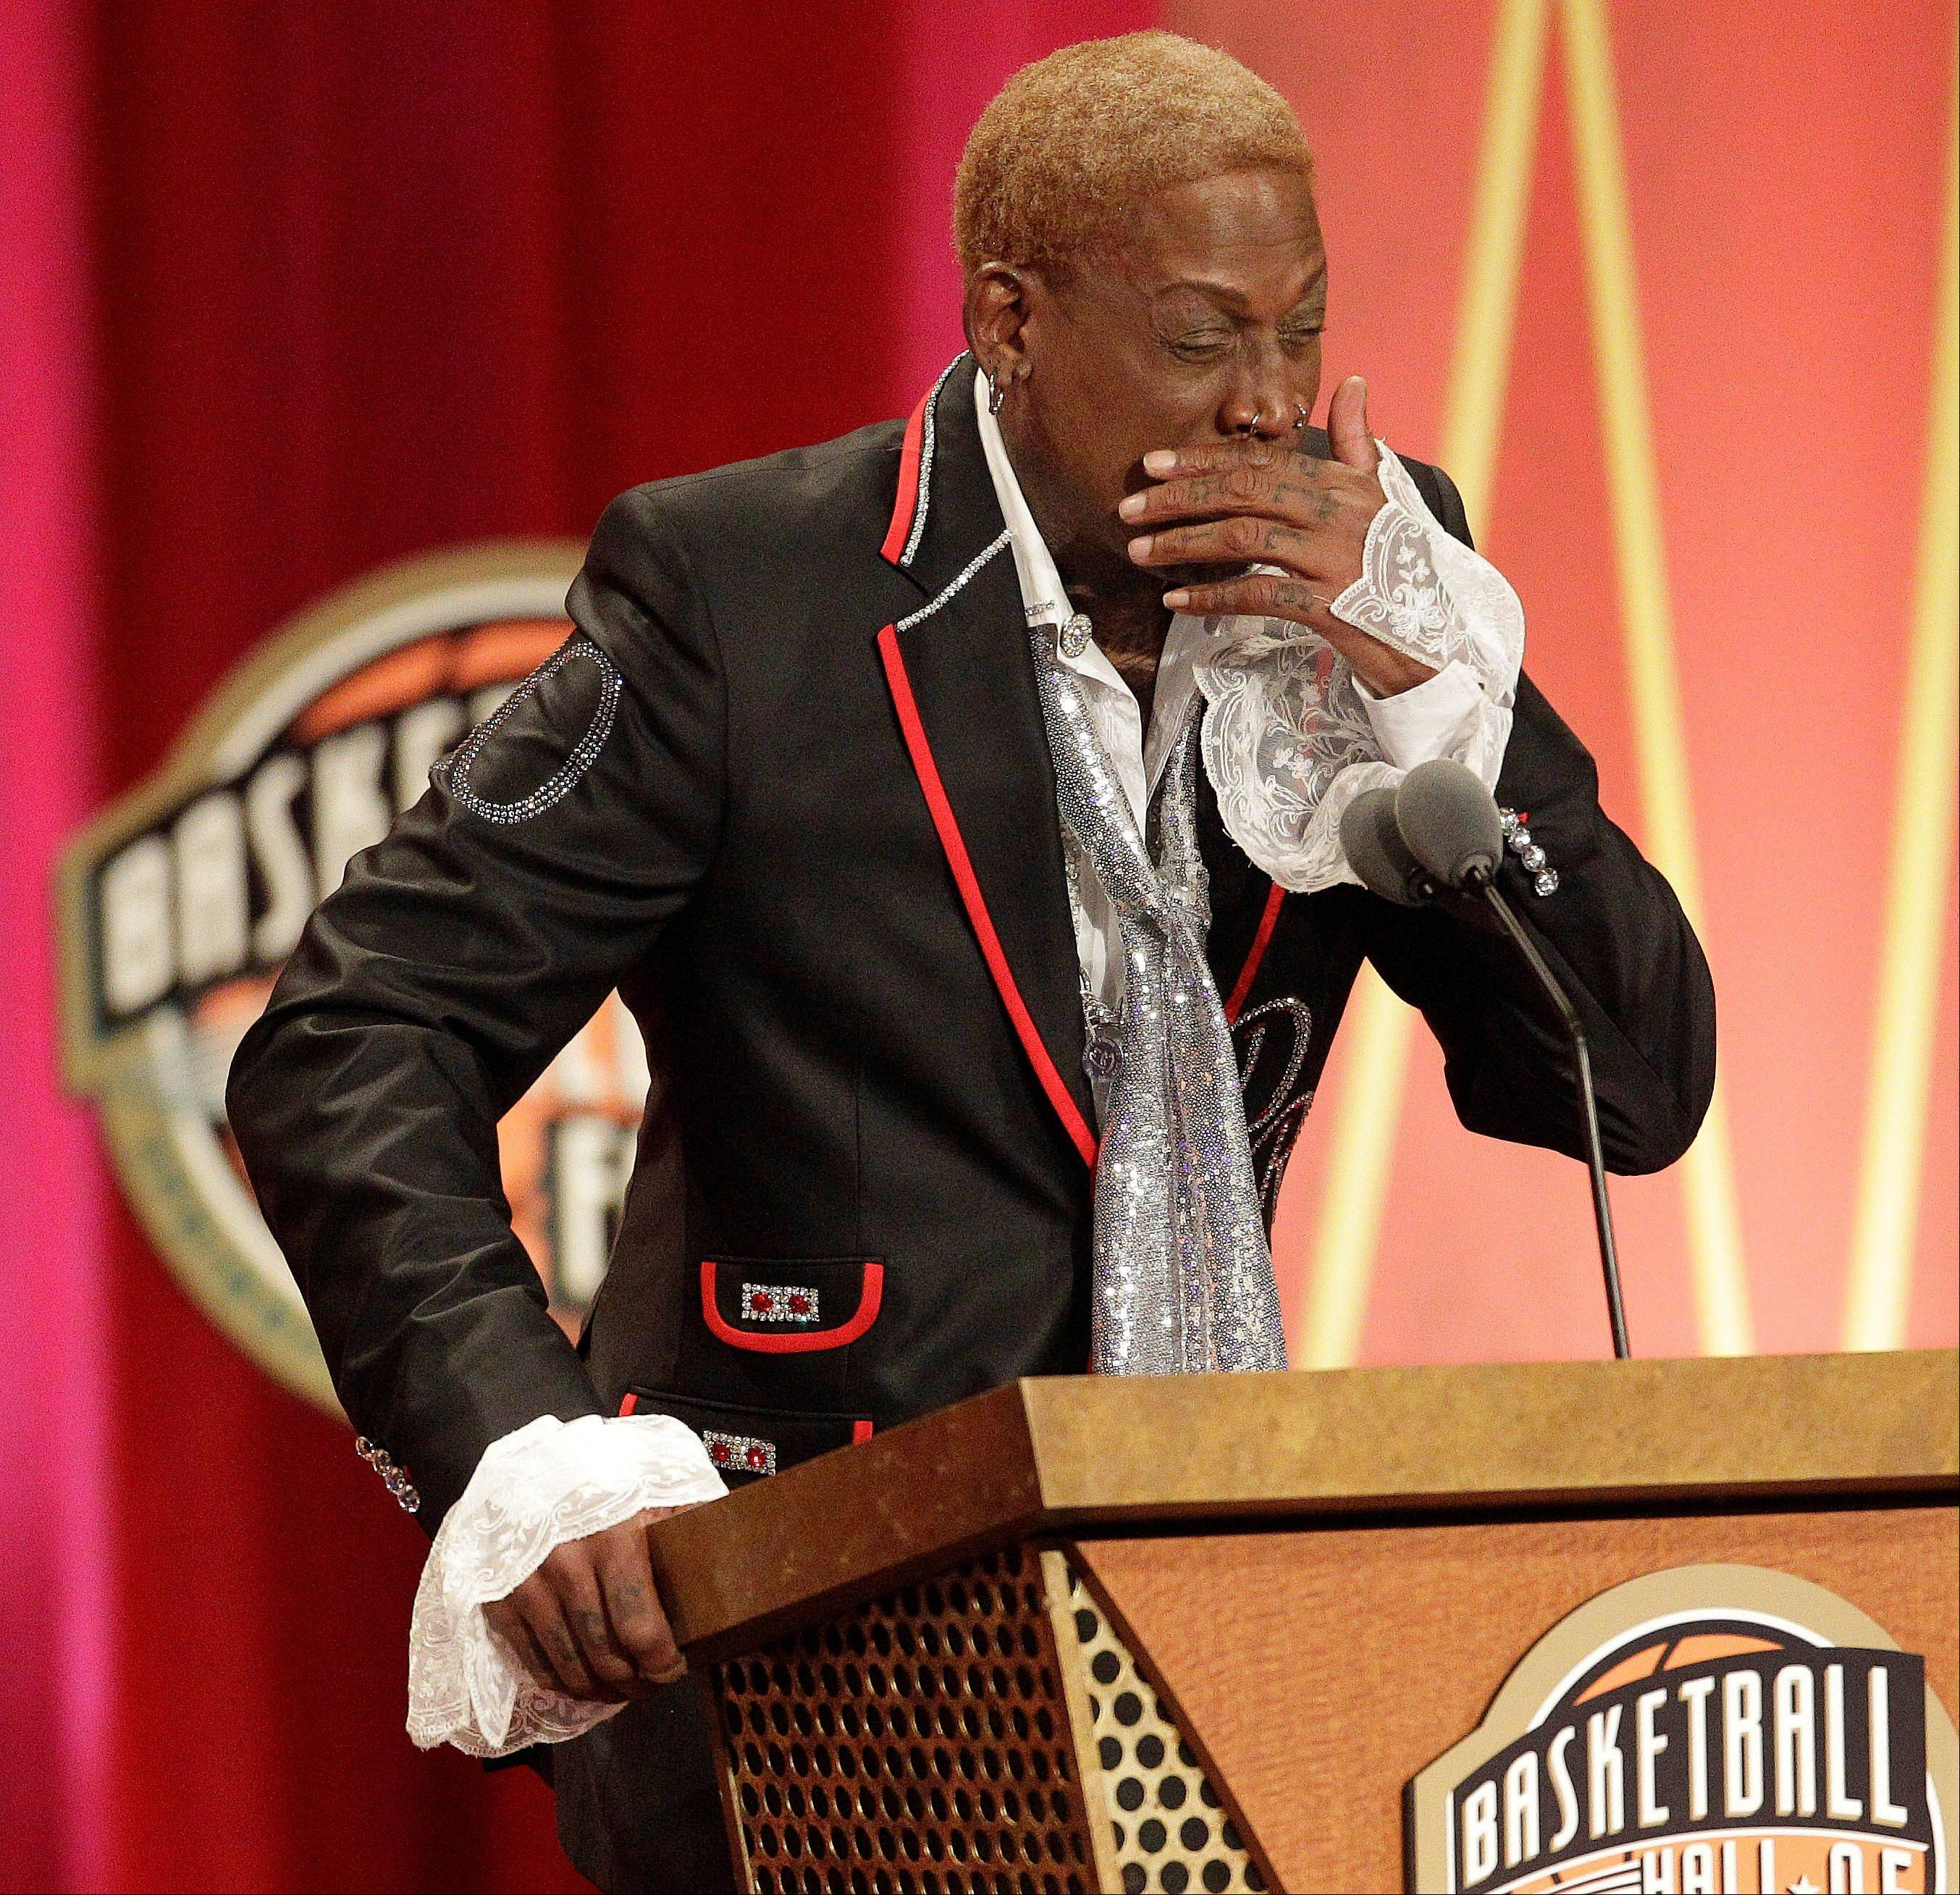 Dennis Rodman becomes emotional during his address for his Basketball Hall of Fame enshrinement.